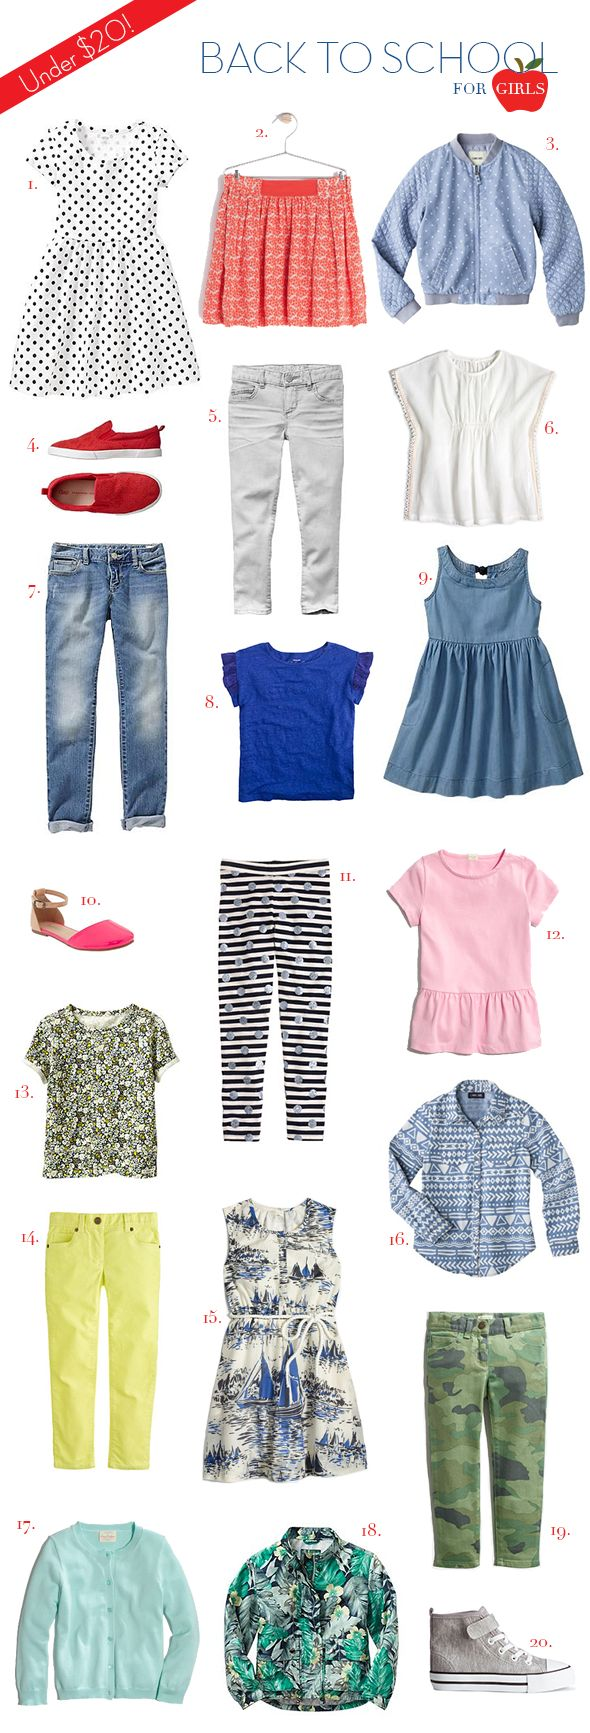 20 back to school finds for $20 or less: girls!